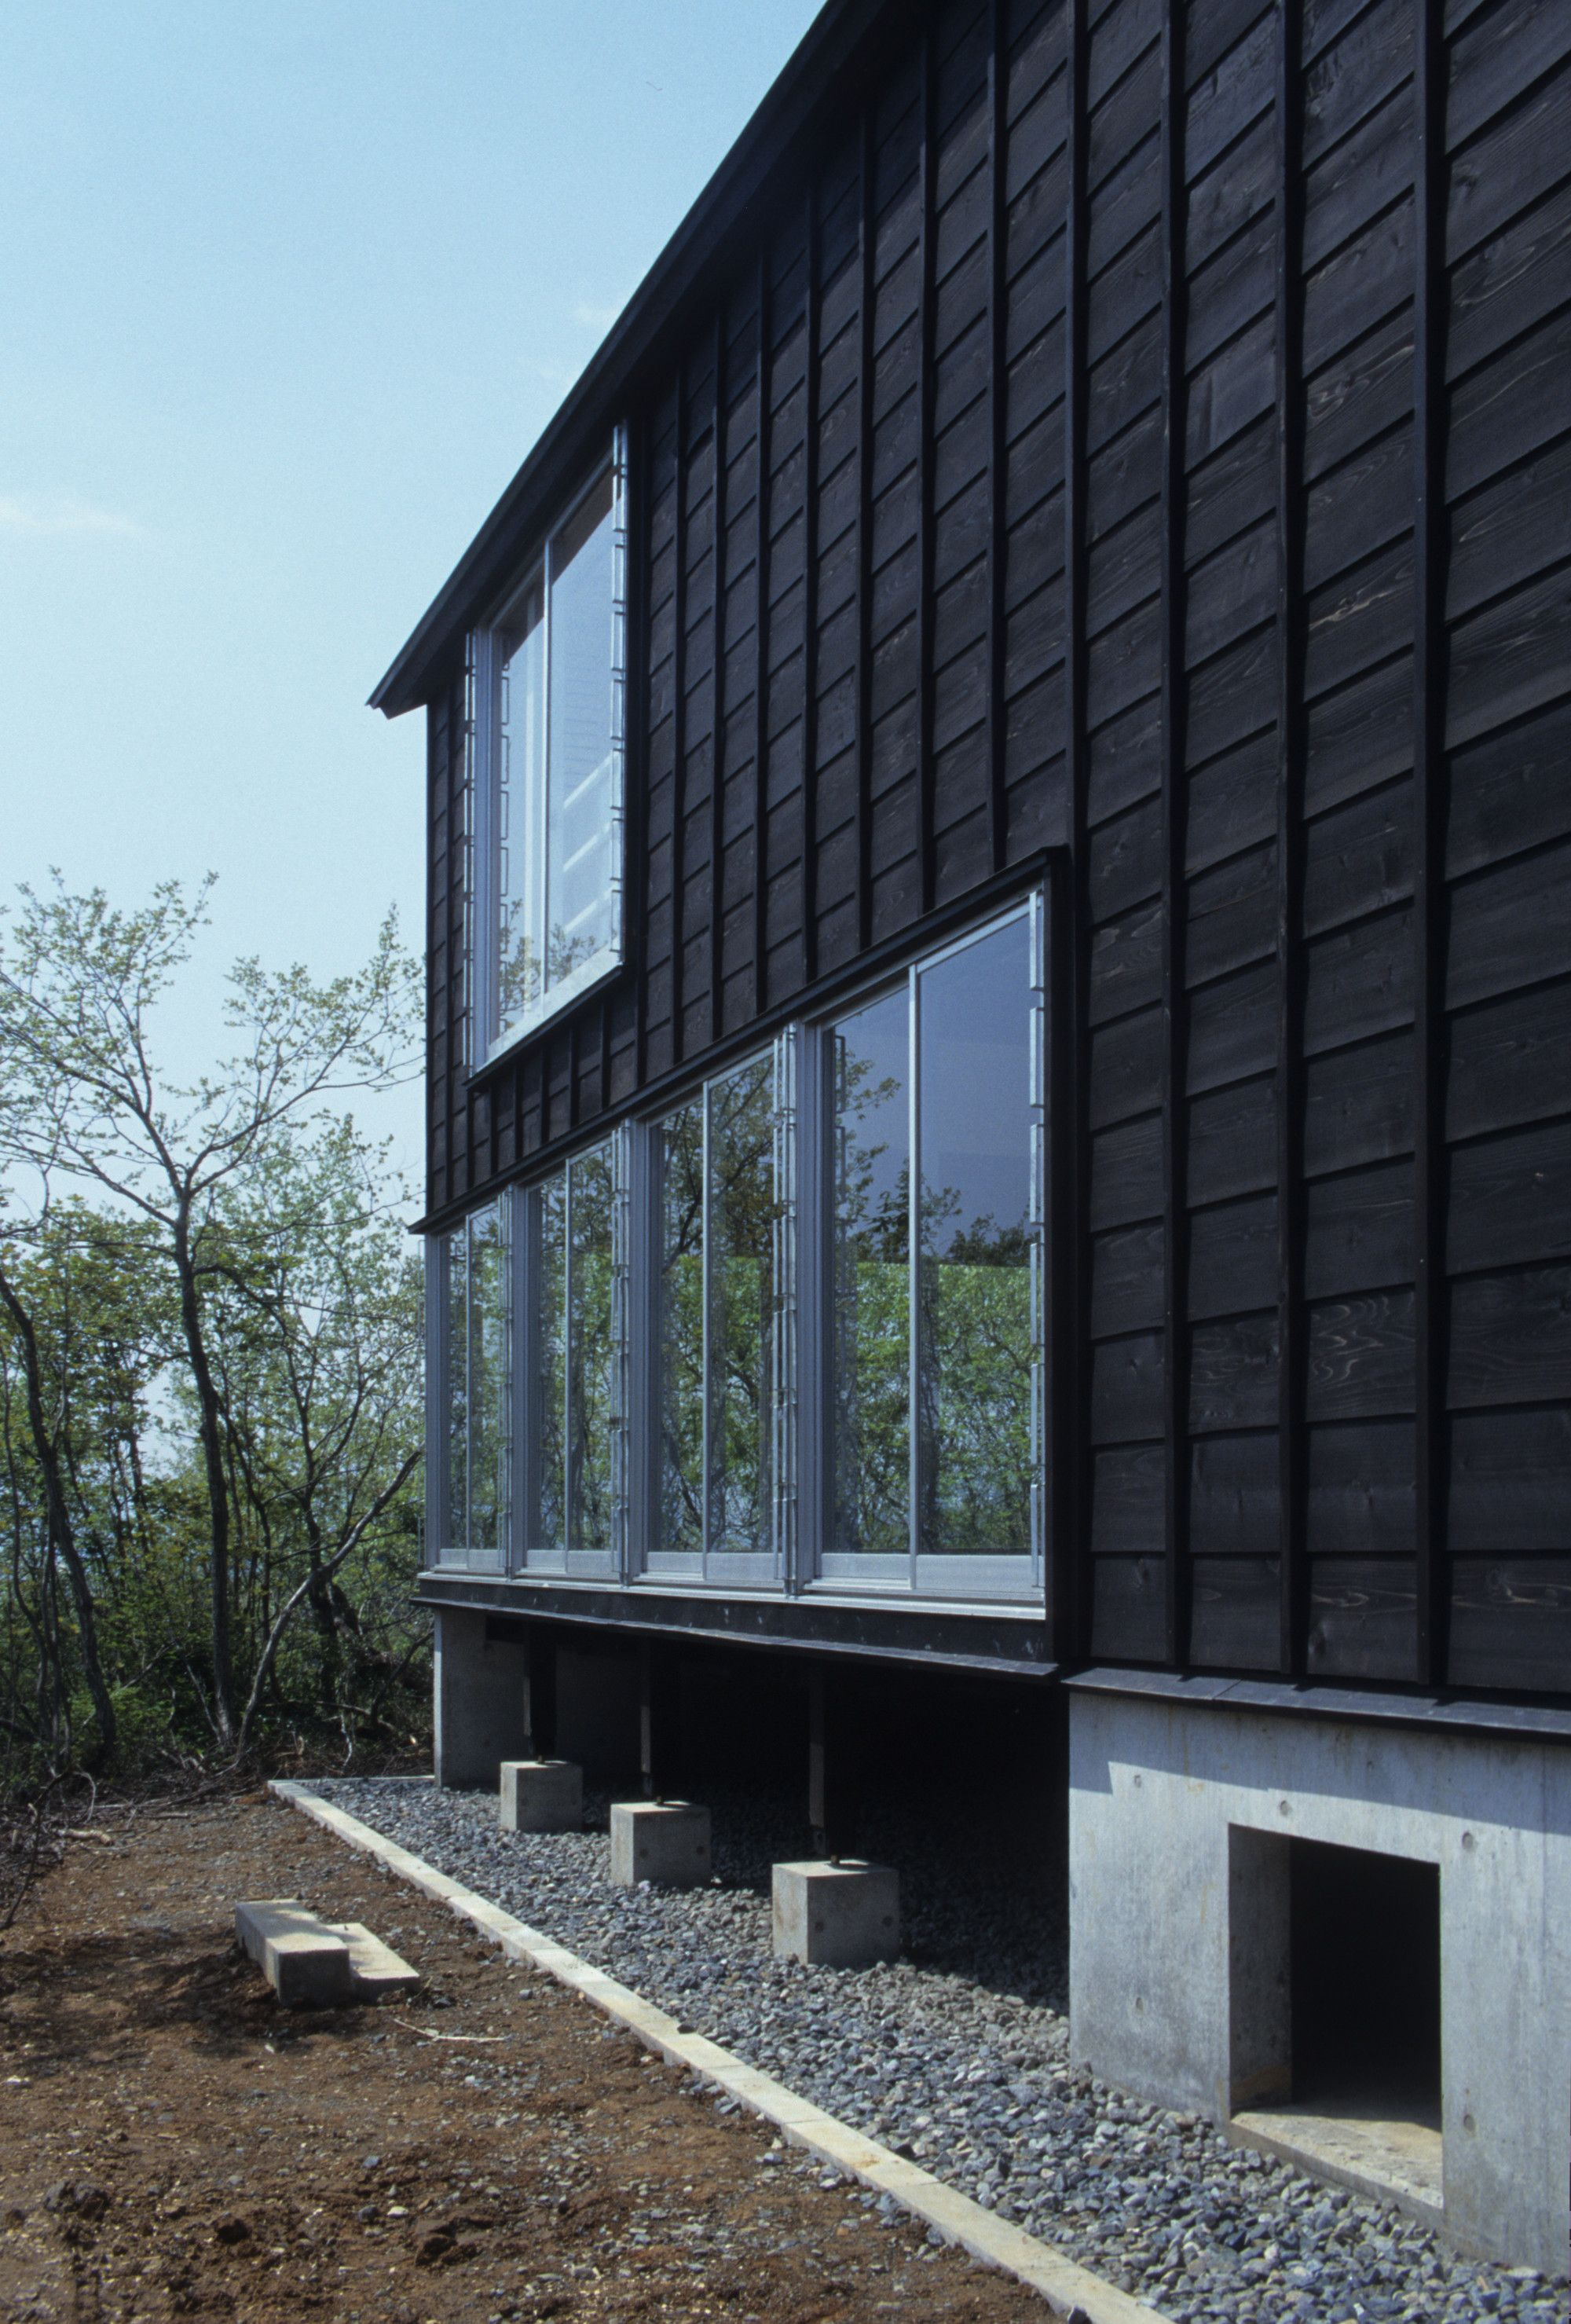 Image of from gallery cottage in tsumari daigo ishii future scape architects photograph by koji fujii also forest house peter bohlin momas geometry rh pinterest